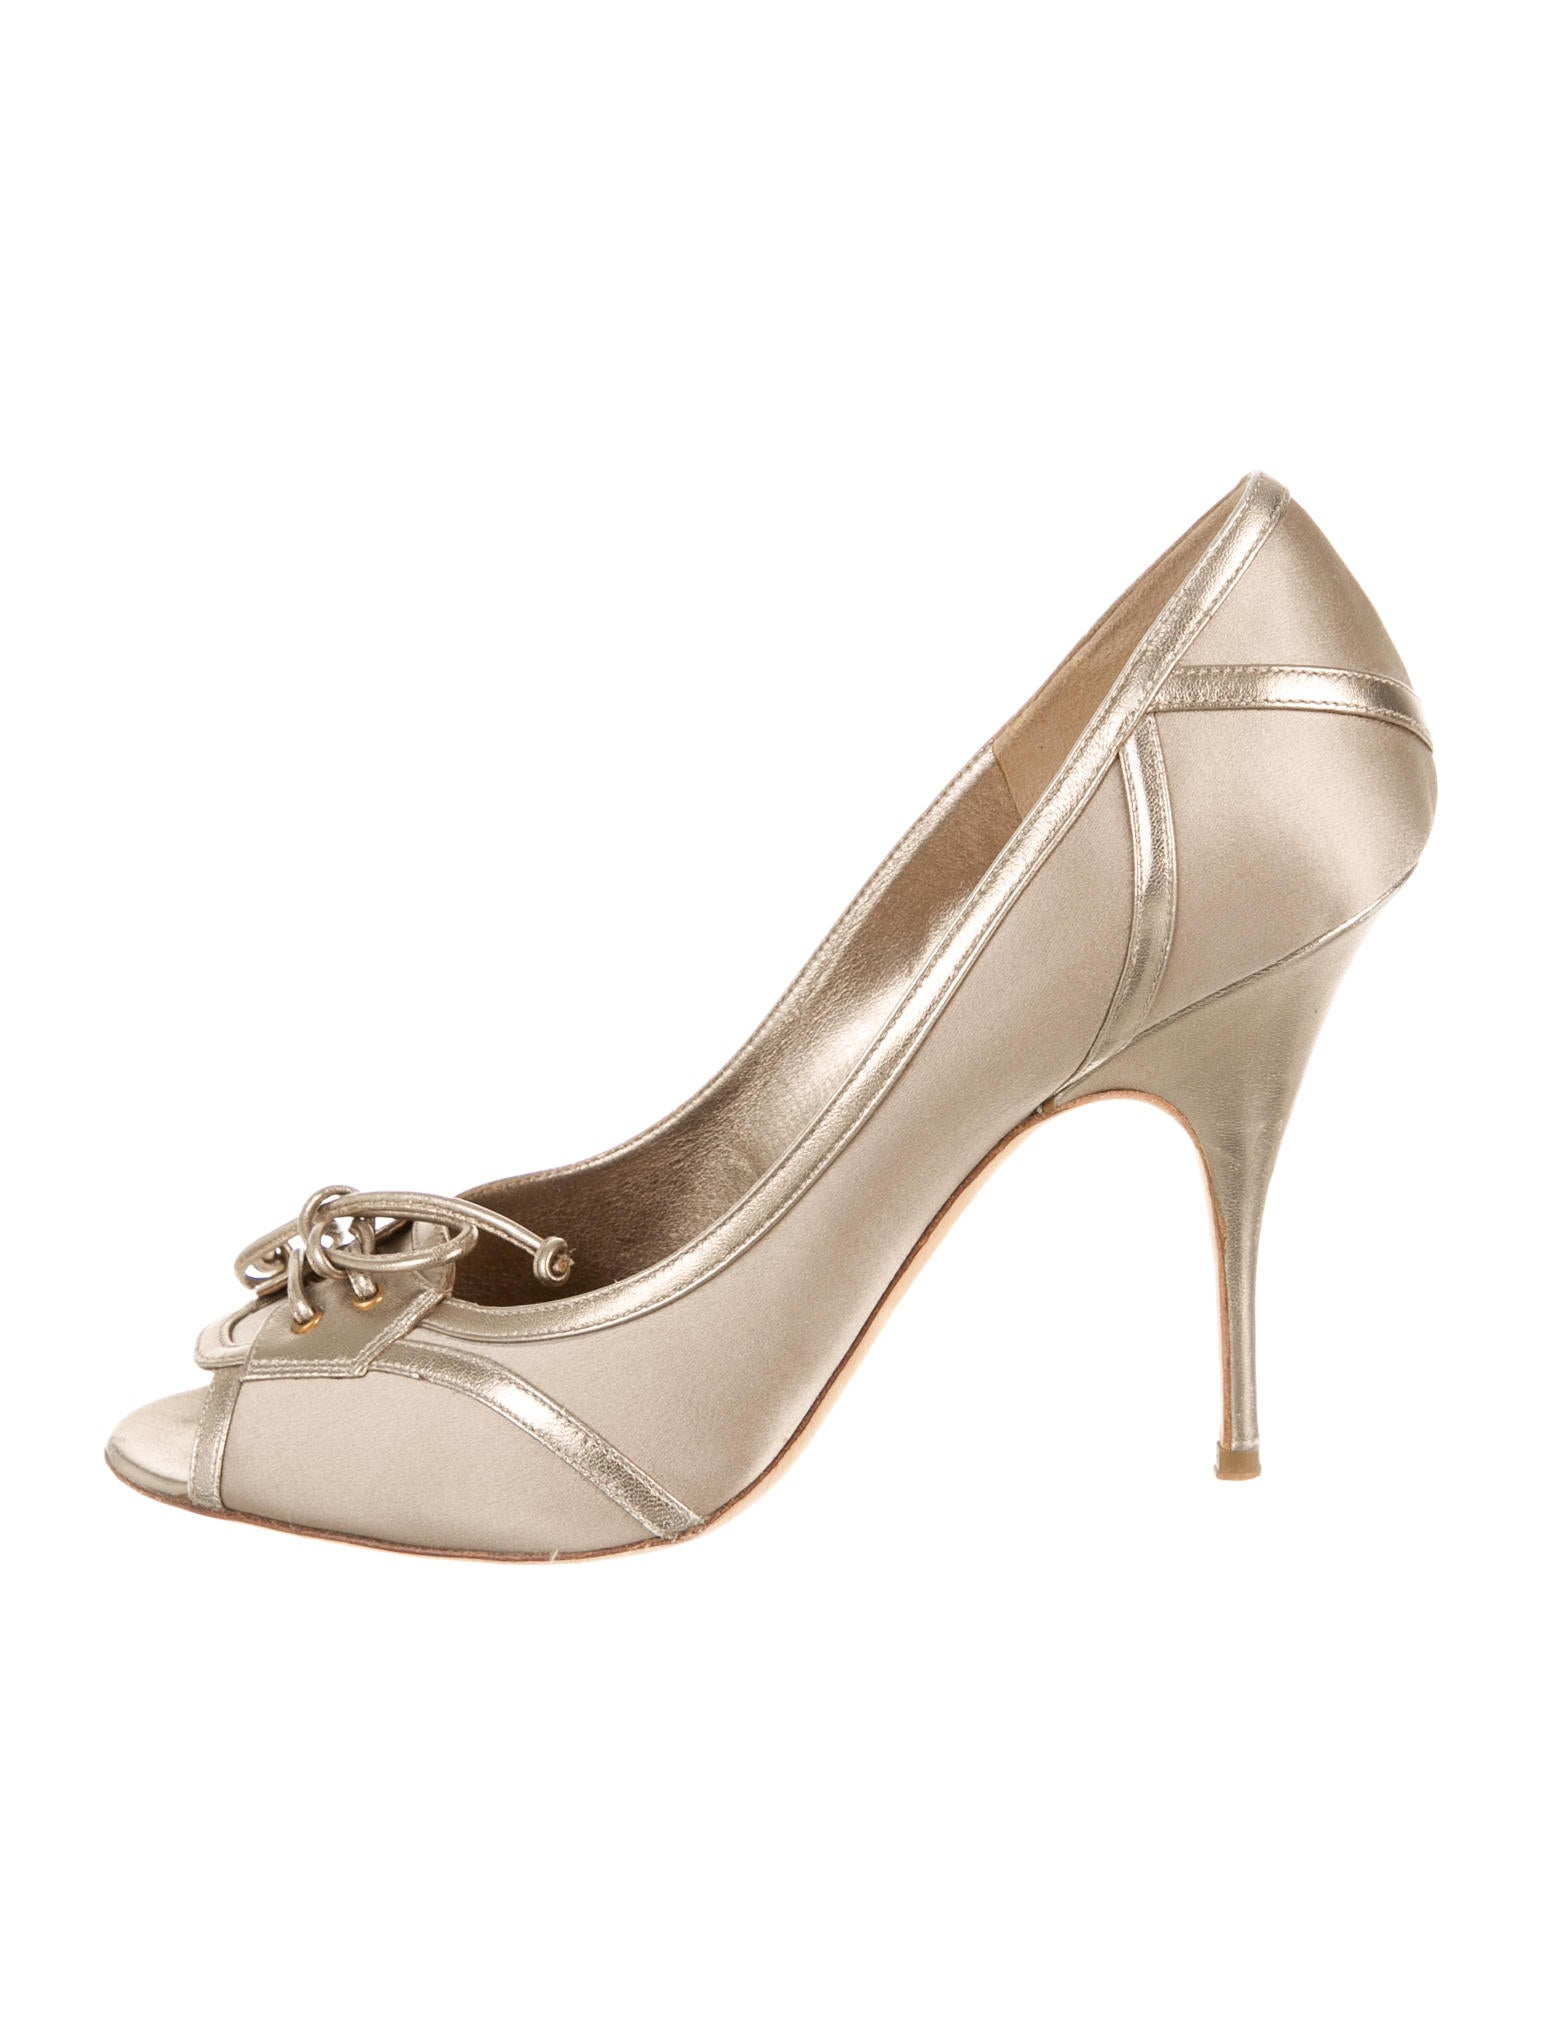 givenchy pumps shoes giv24390 the realreal